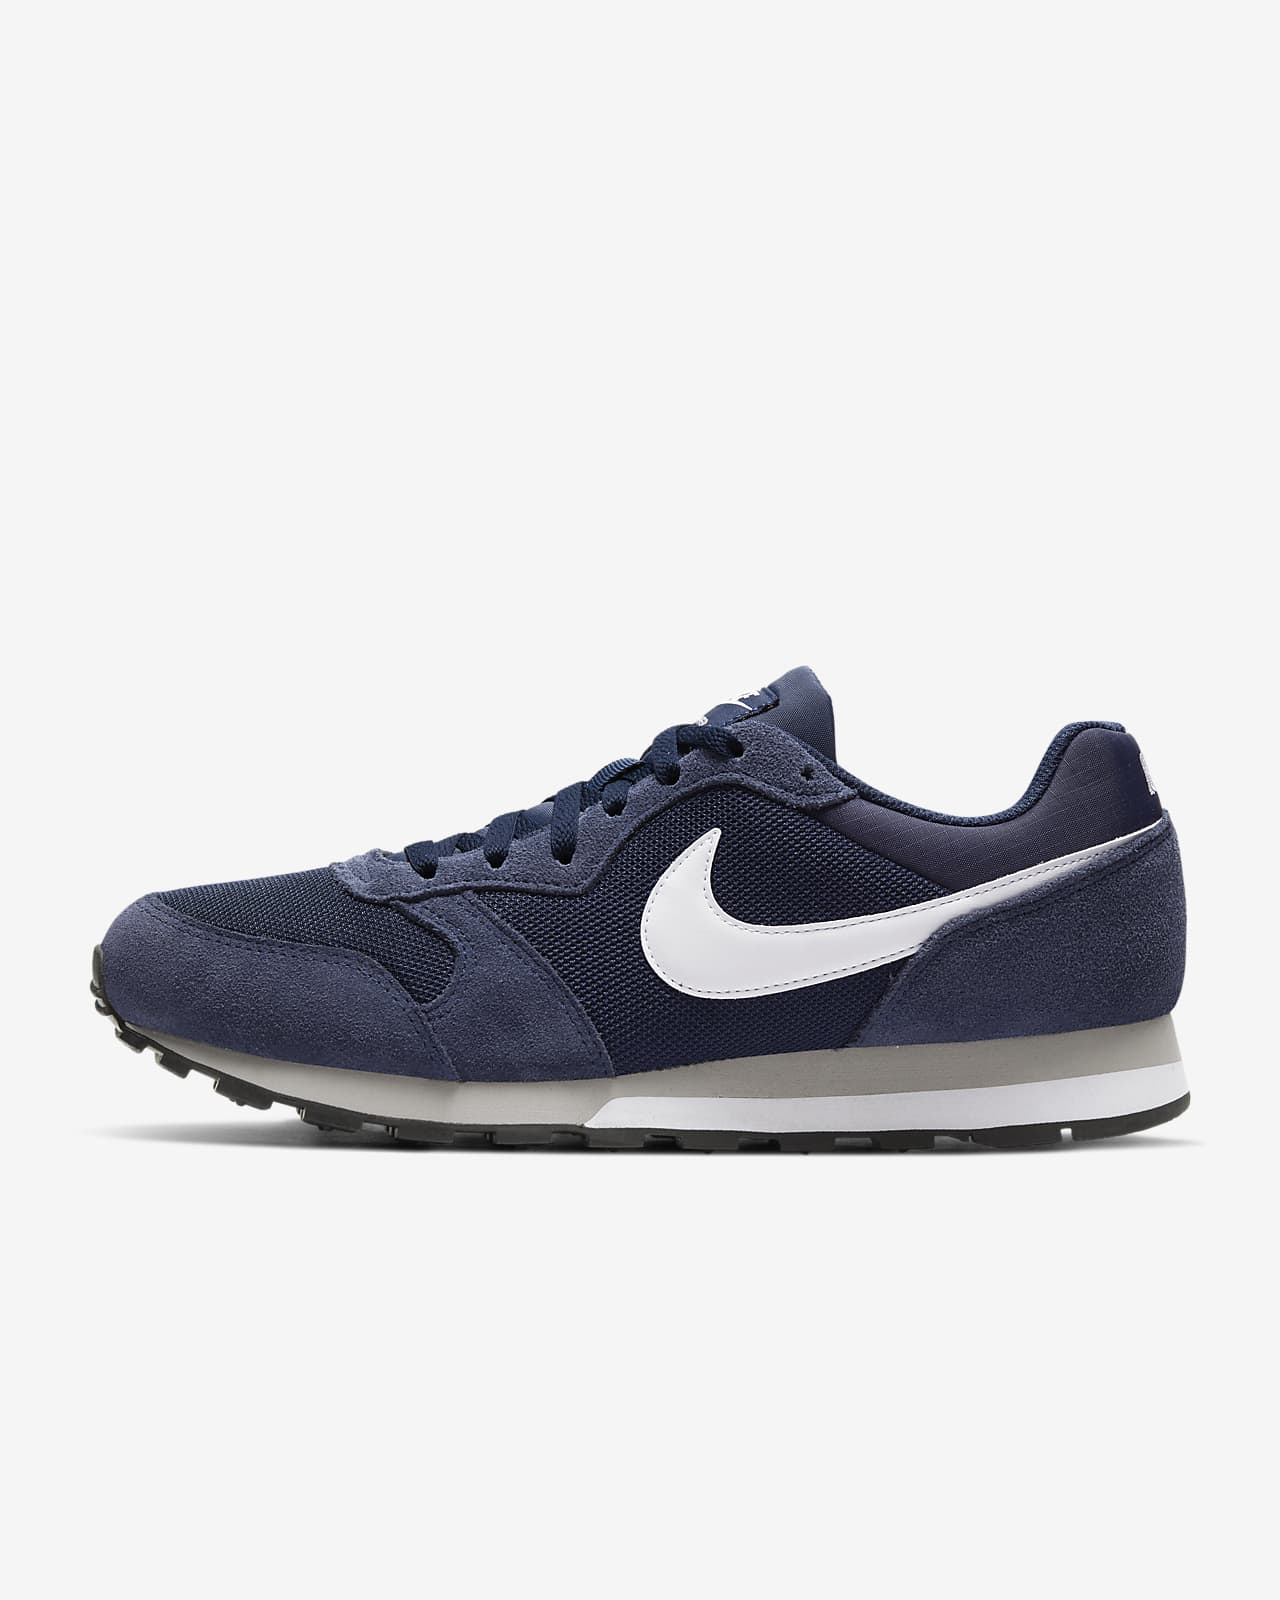 Chaussure Nike MD Runner 2 pour Homme